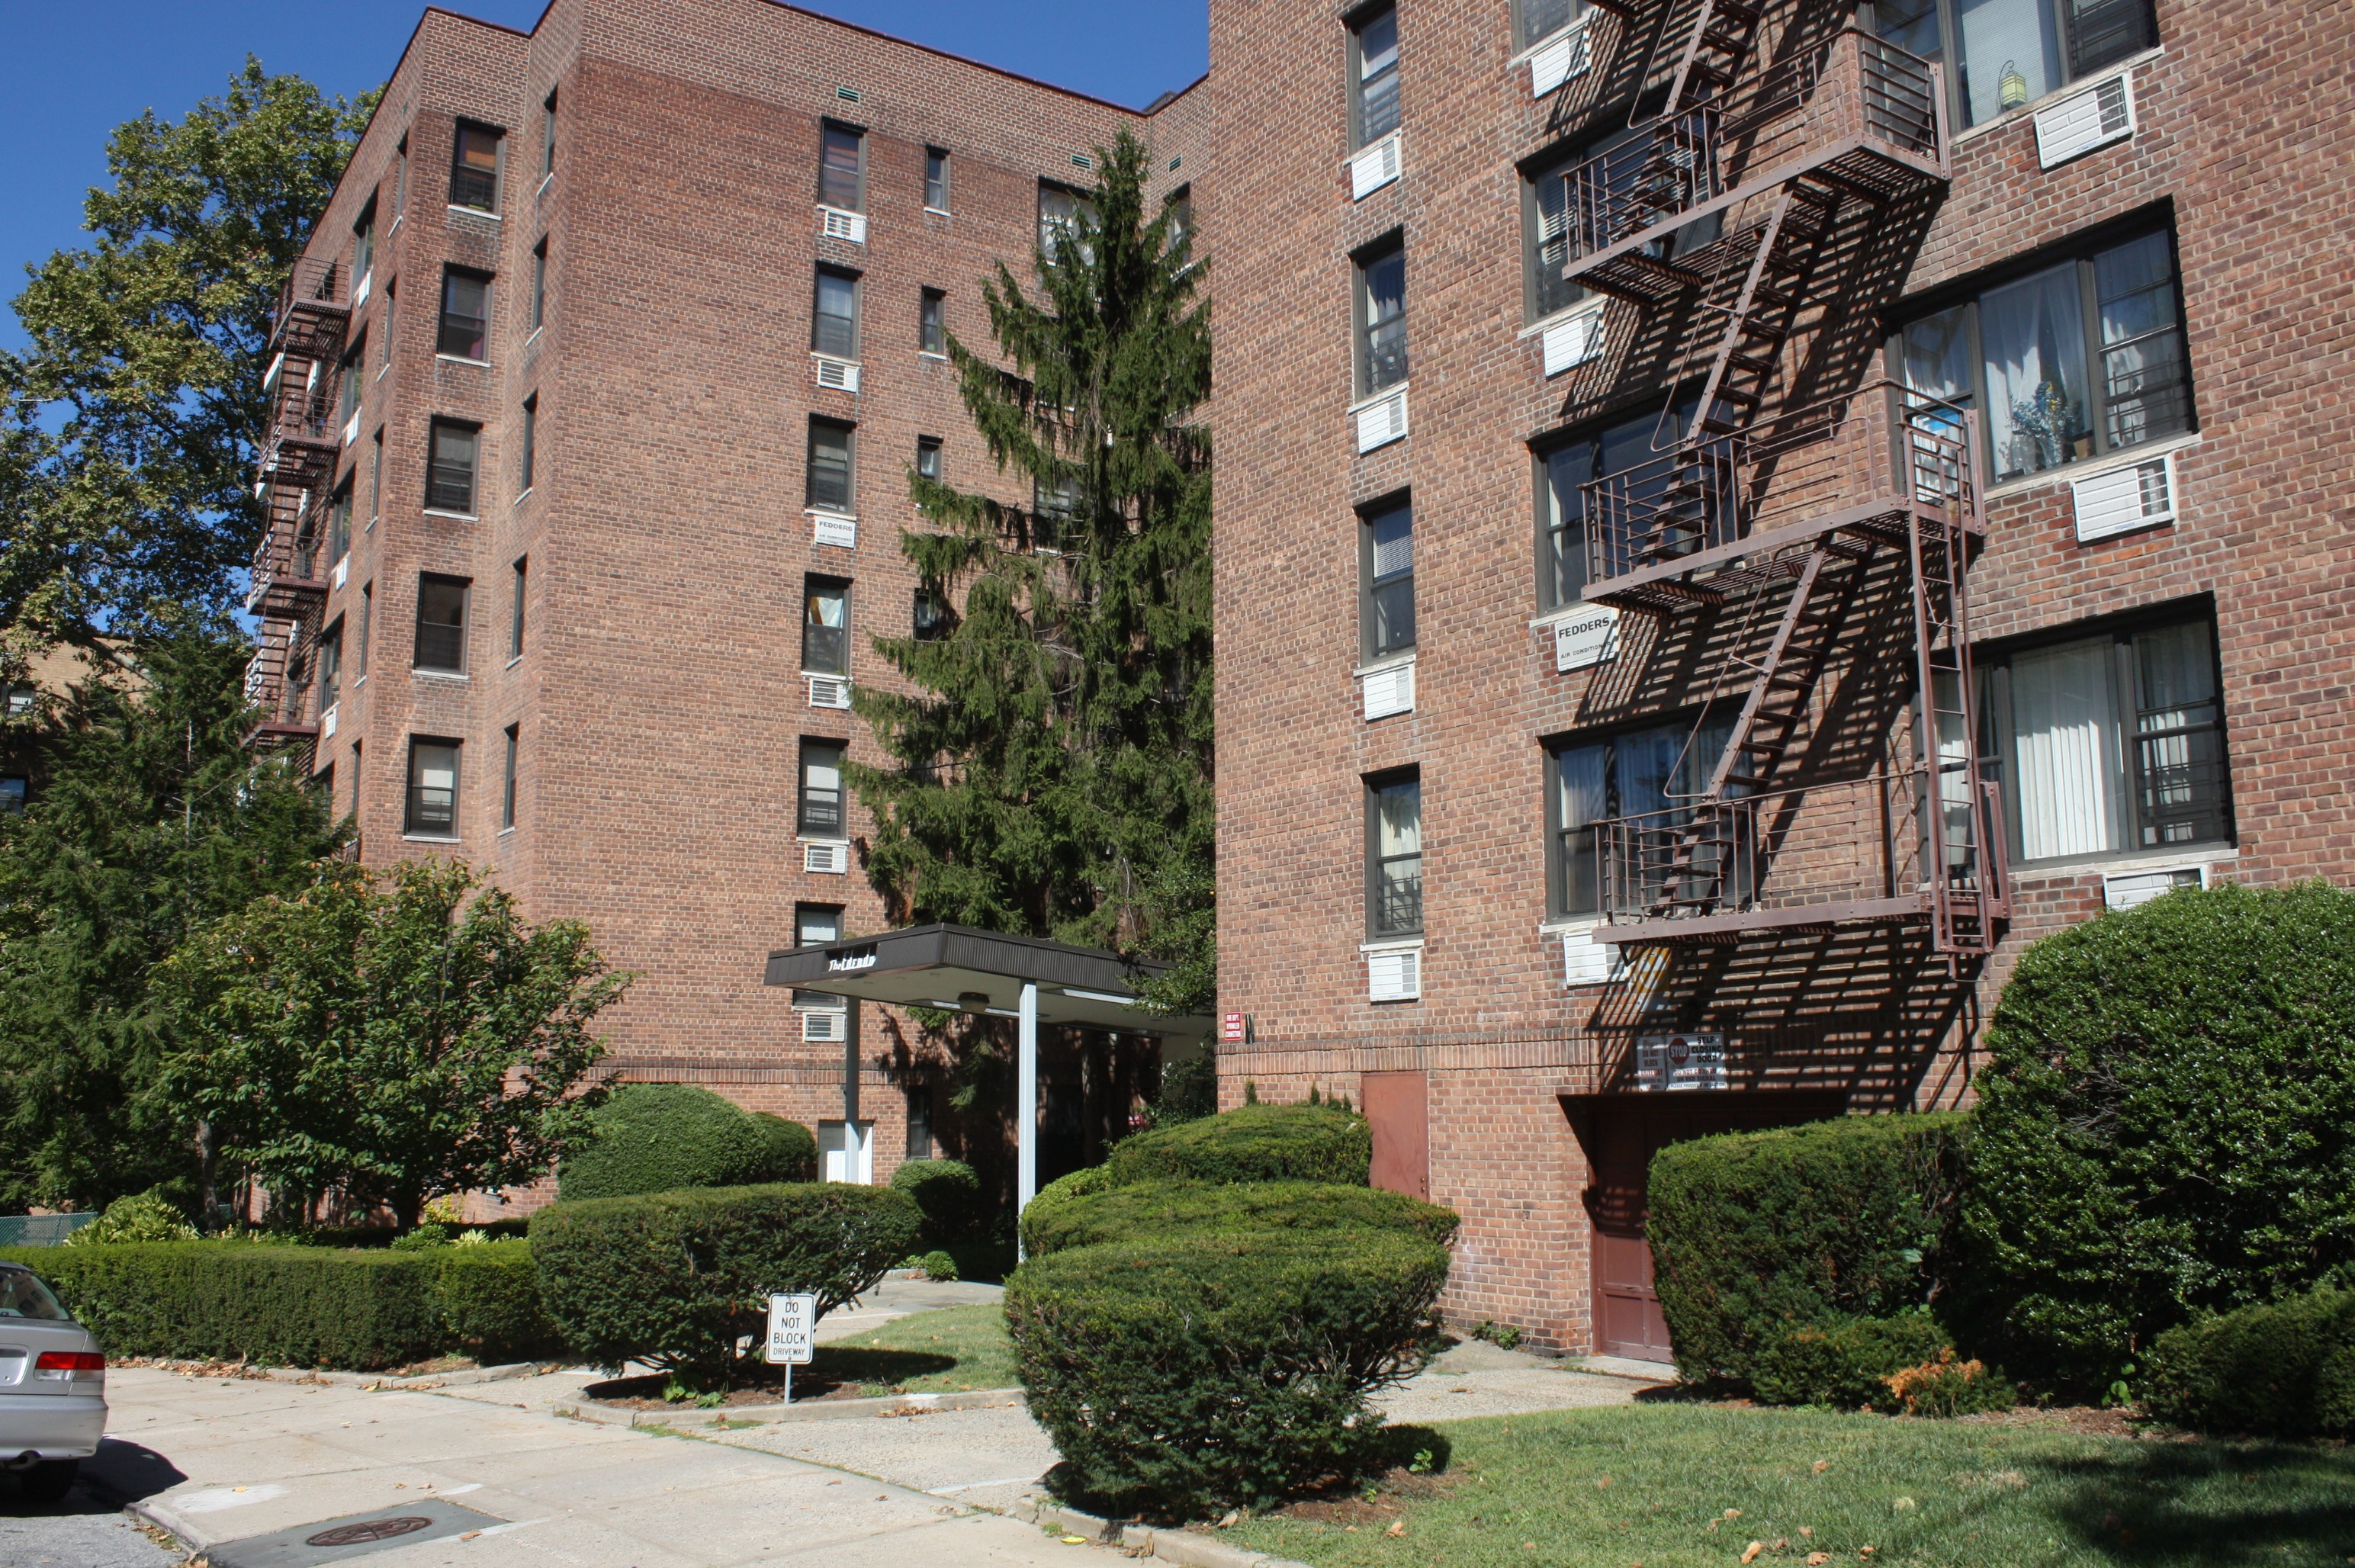 123 valentine lane yonkers ny 10705 1 bedroom apartment - 1 bedroom apartments for rent in yonkers ny ...